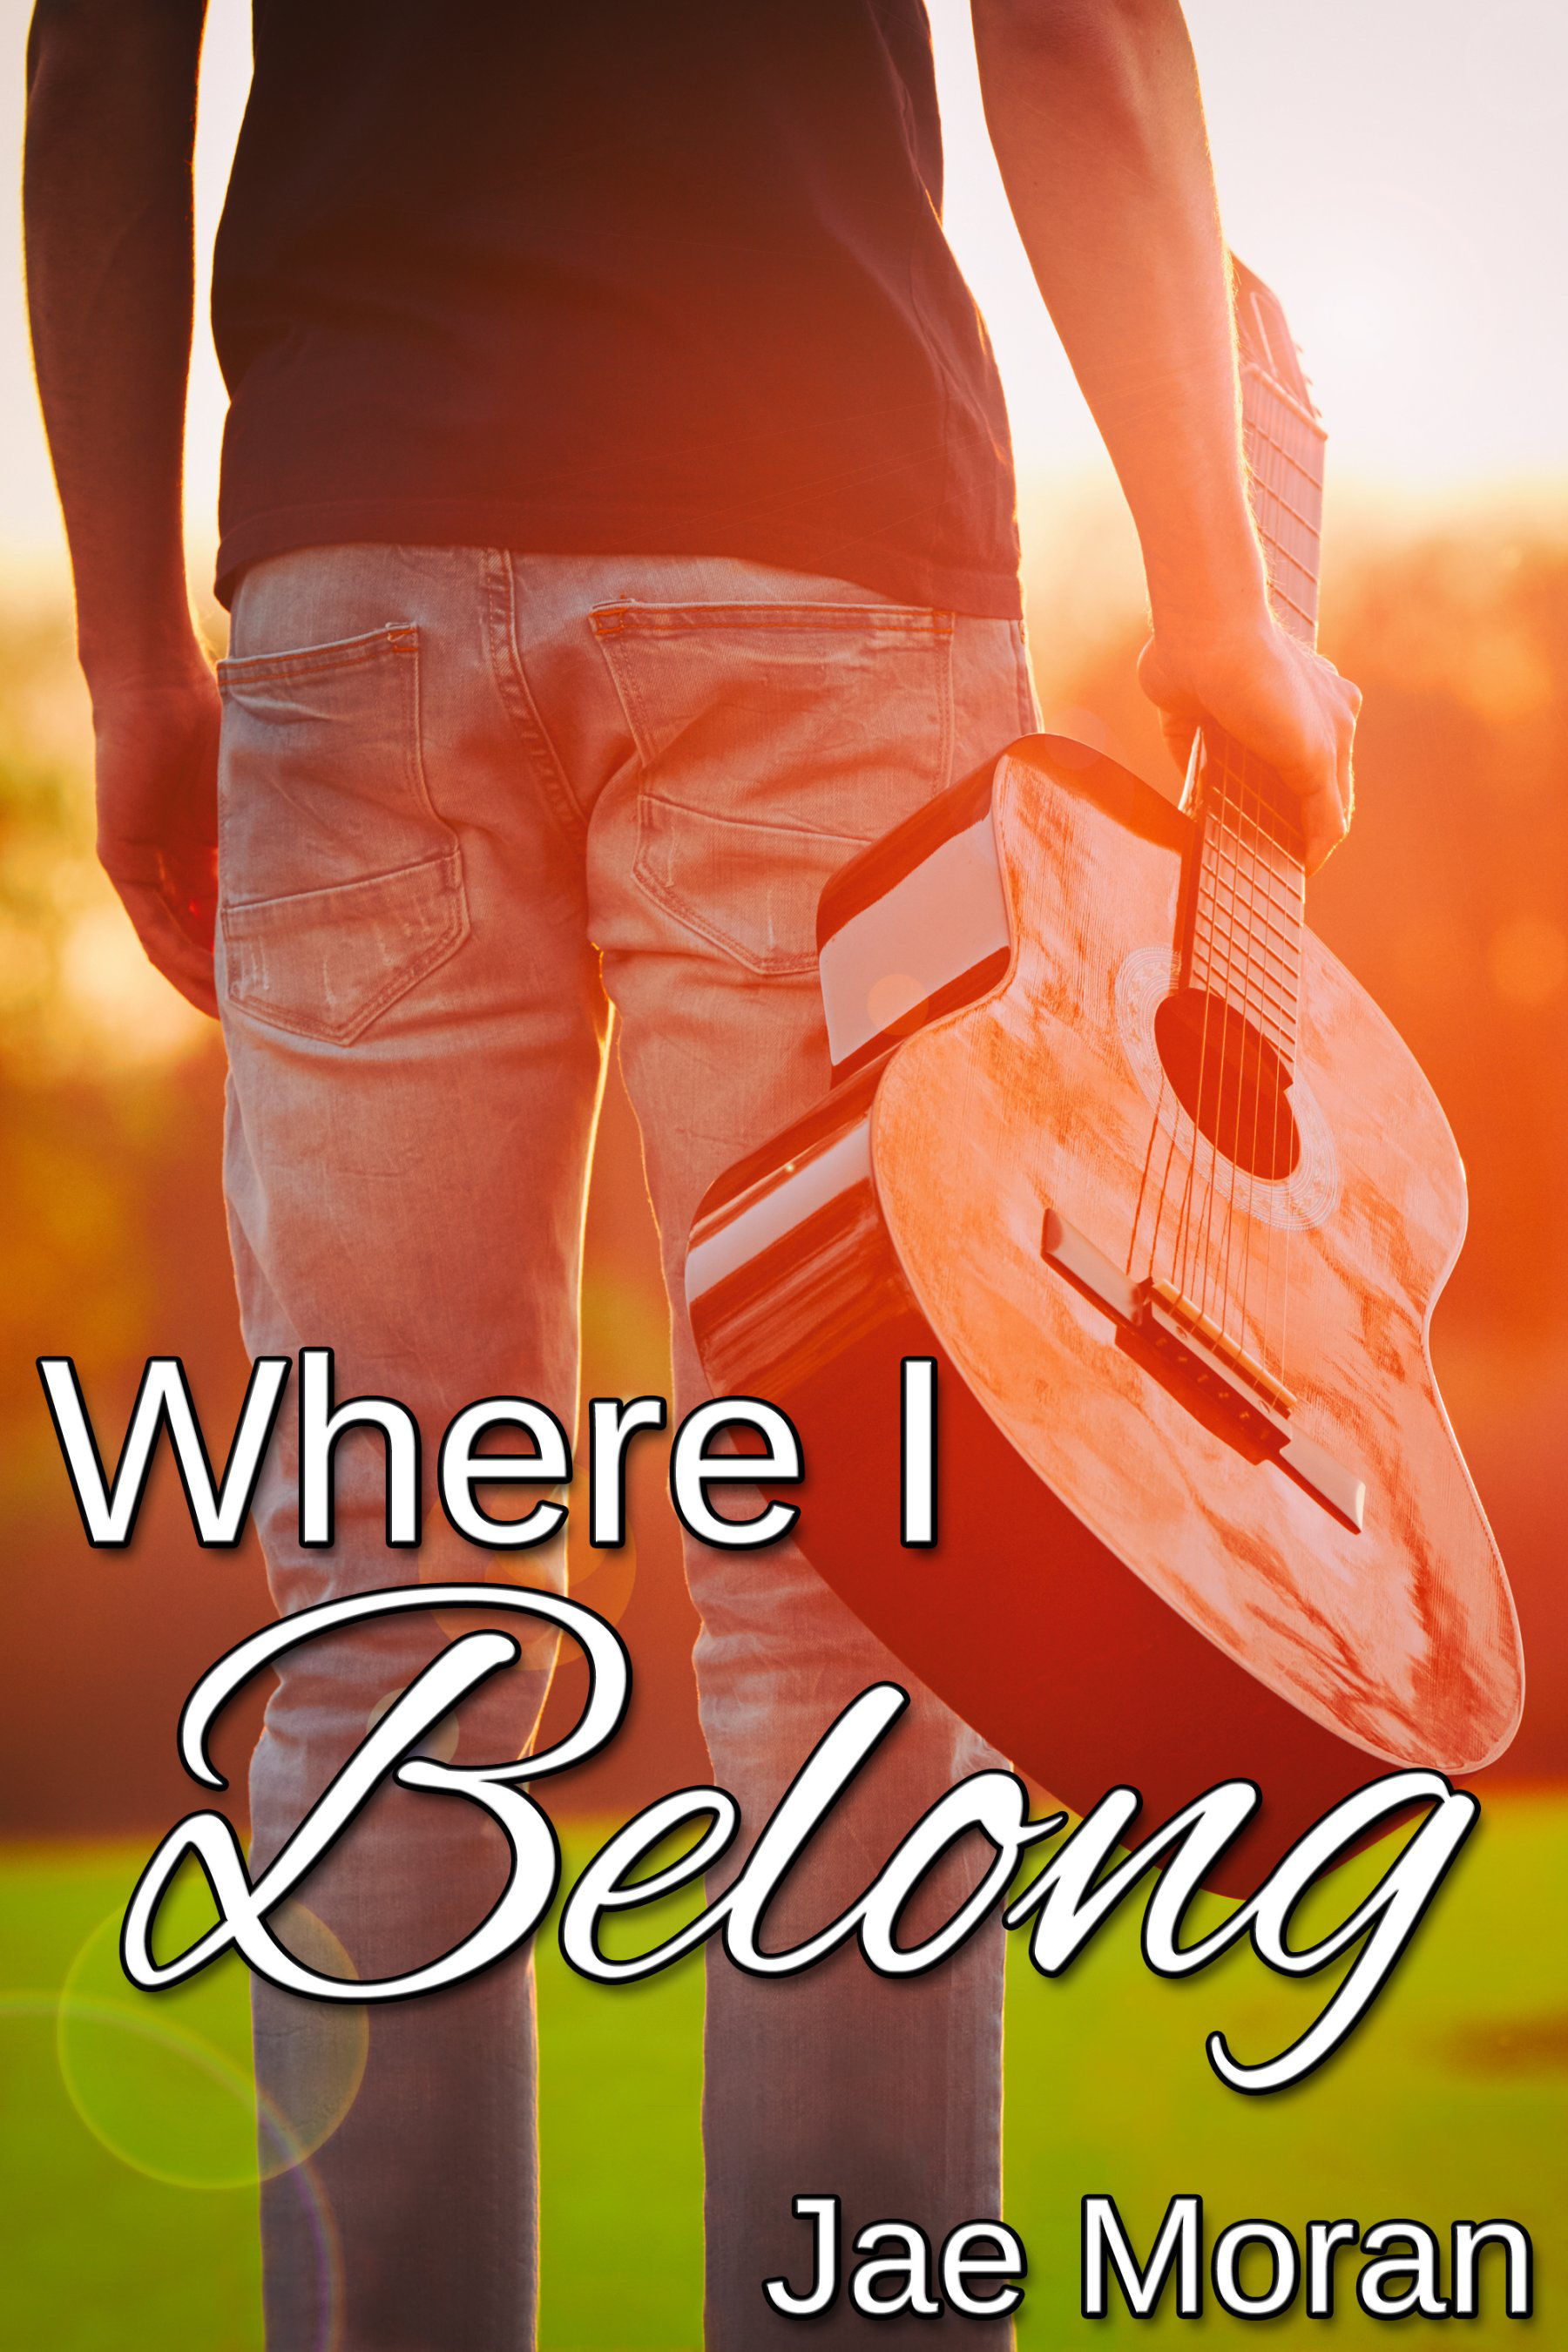 Review: Where I Belong by Jae Moran